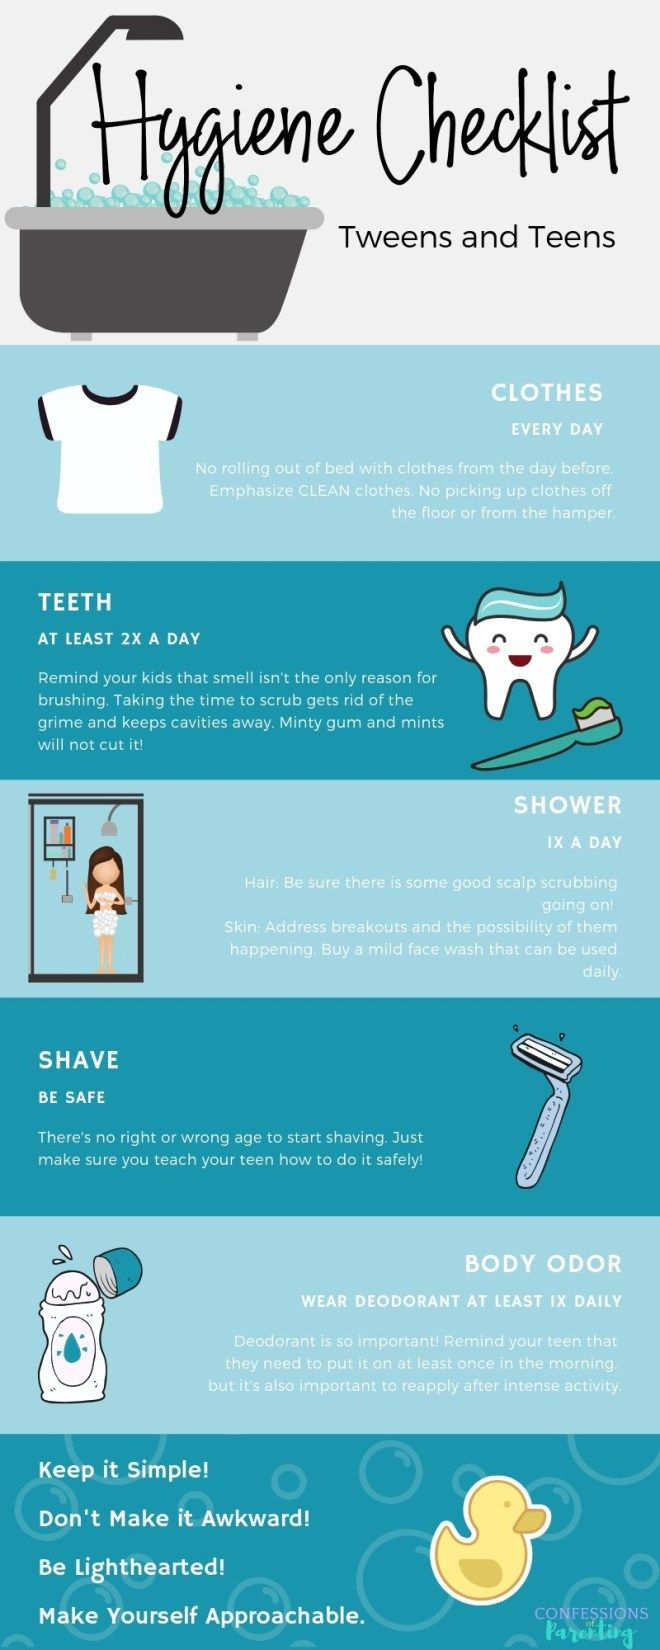 Pin It! The Best Hygiene Checklist for Your Teen. Is your tween getting a little bit stinky? We have the perfect teenage hygiene talking points to help get talking with your teenager! #teen #hygiene #parenting #tips #hygienechecklist